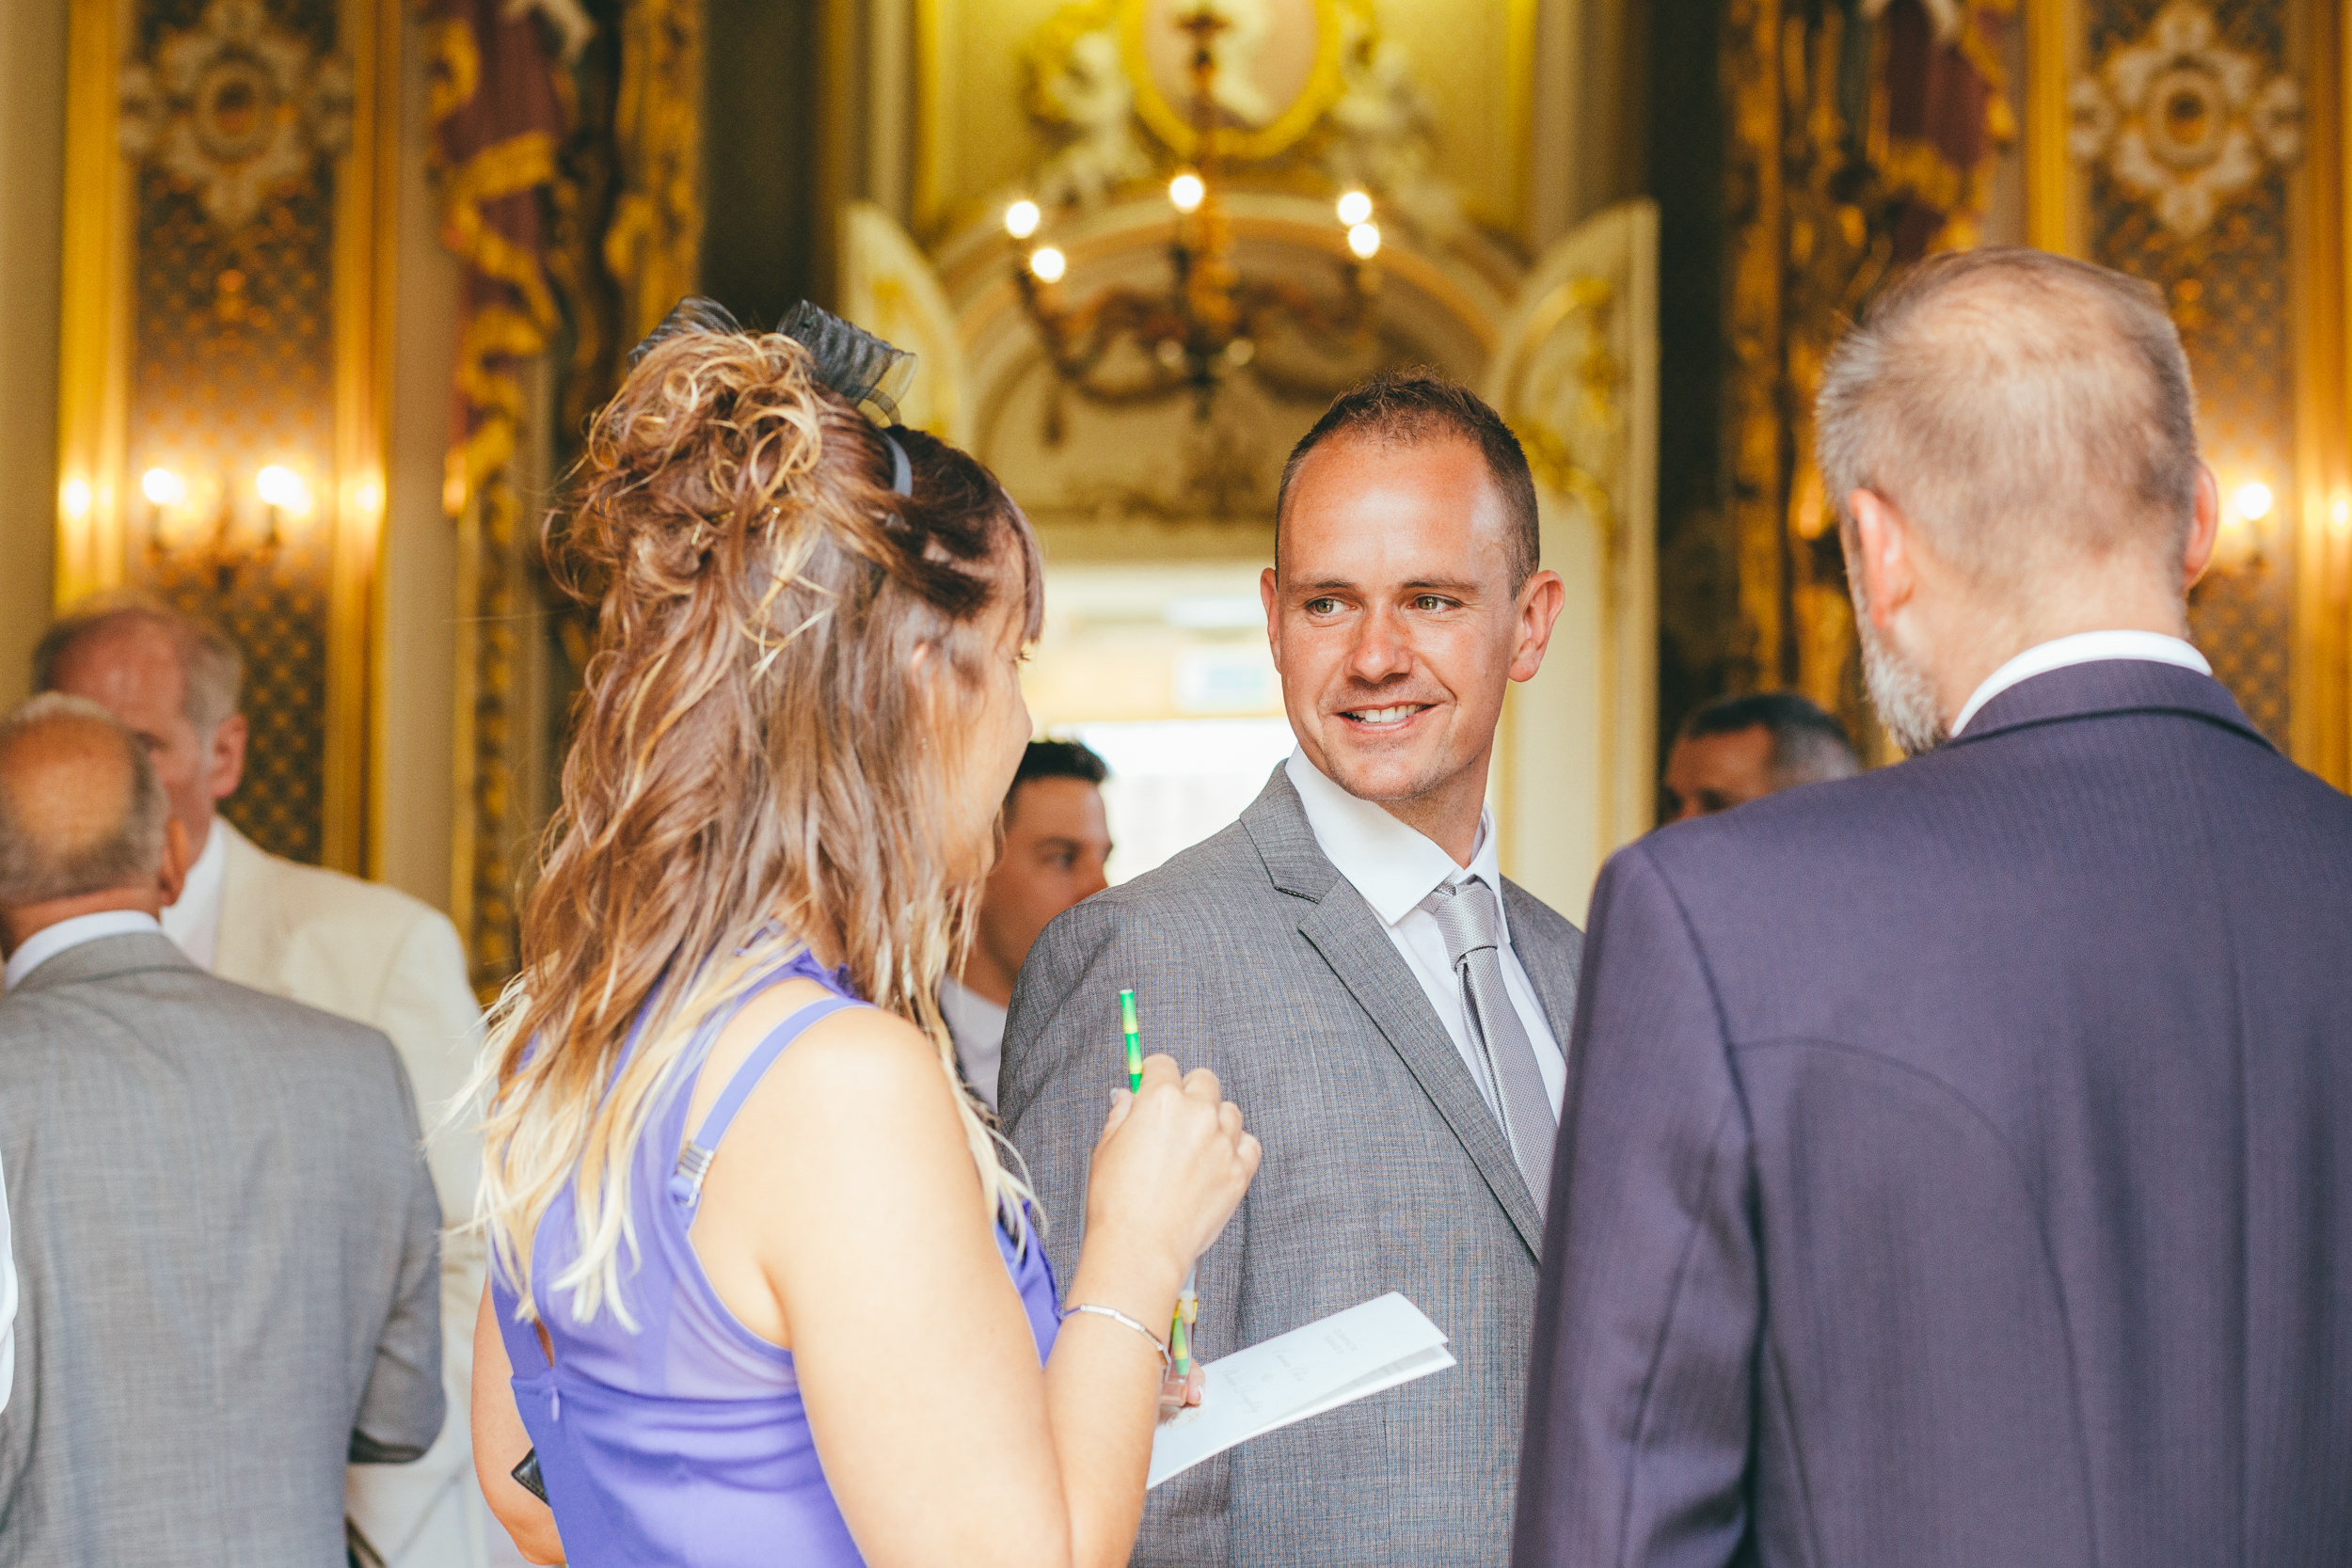 Wedding guests eating canapes and drinking at Harlaxton Manor